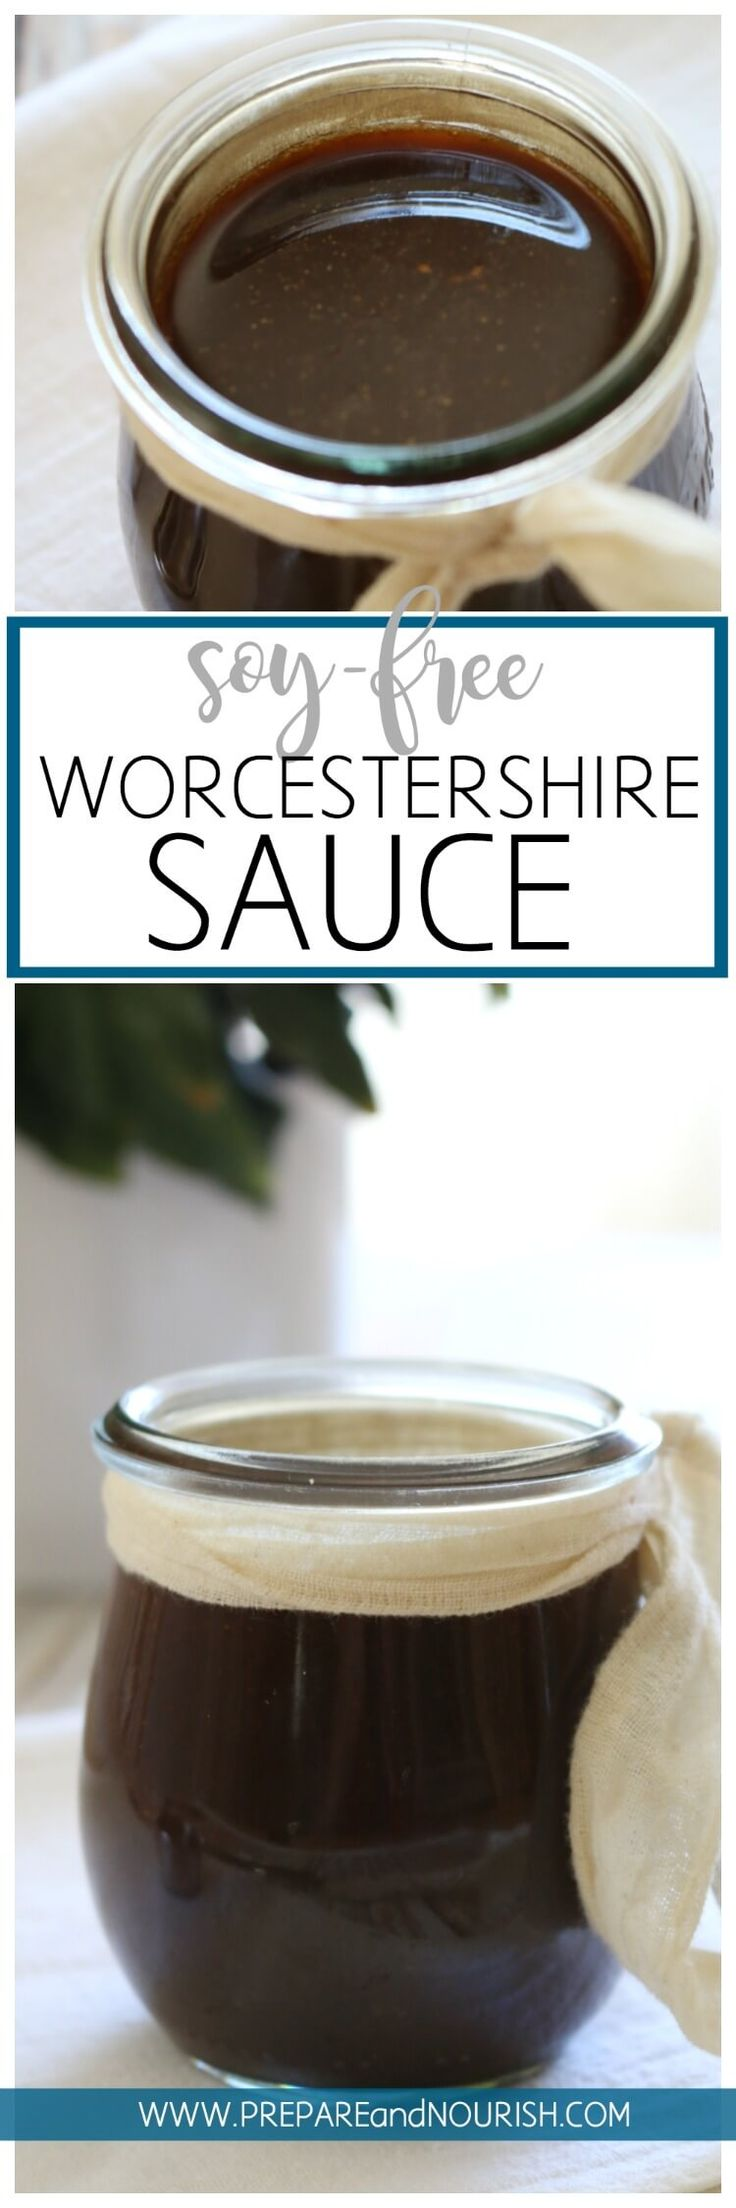 Soy Free Worcestershire Sauce - Incredibly flavorful condiment is recreated with real food ingredients and paleo friendly. Use in your favorite recipes or simply drizzle on top of steak. via @preparenourish